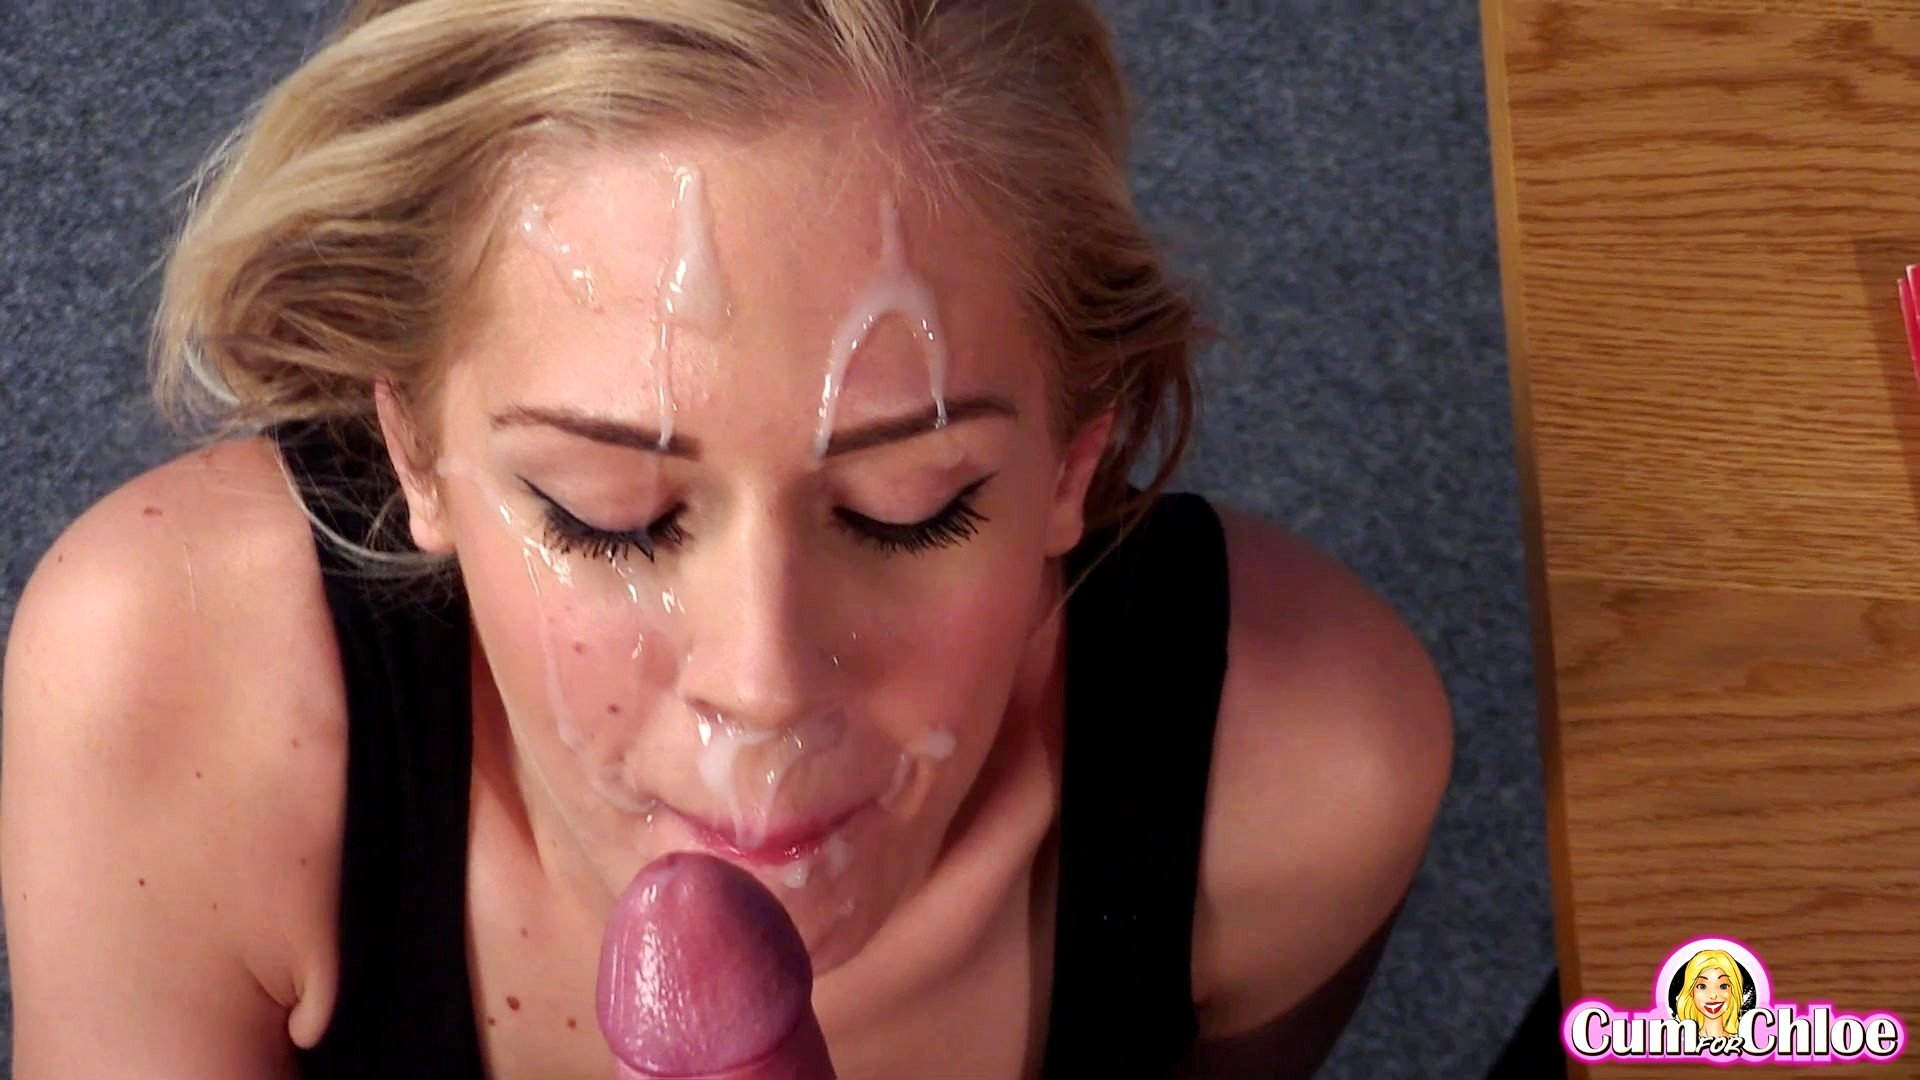 Scarlet young porn